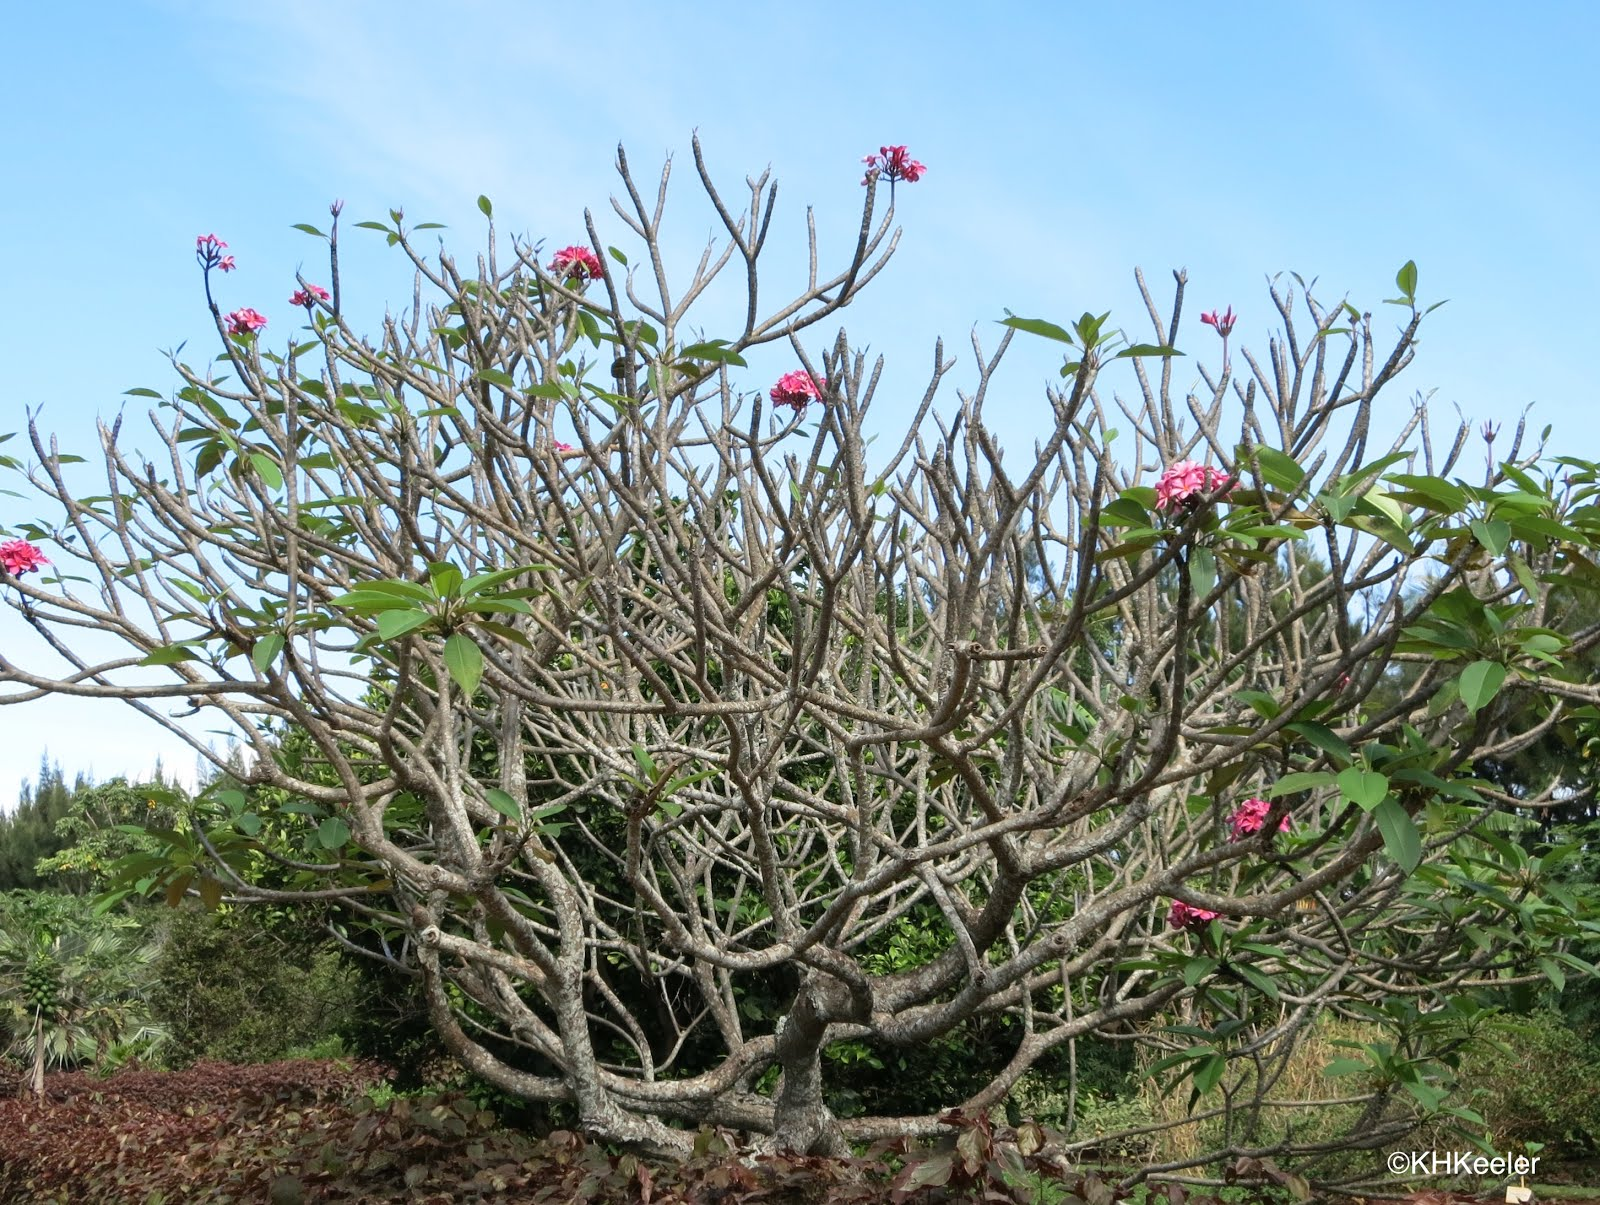 A wandering botanist plant story fragrant plumeria frangipani hawaiis poisonous plants states that although they arent very toxic people have become sick from eating plumeria salads eat plumeria flowers in izmirmasajfo